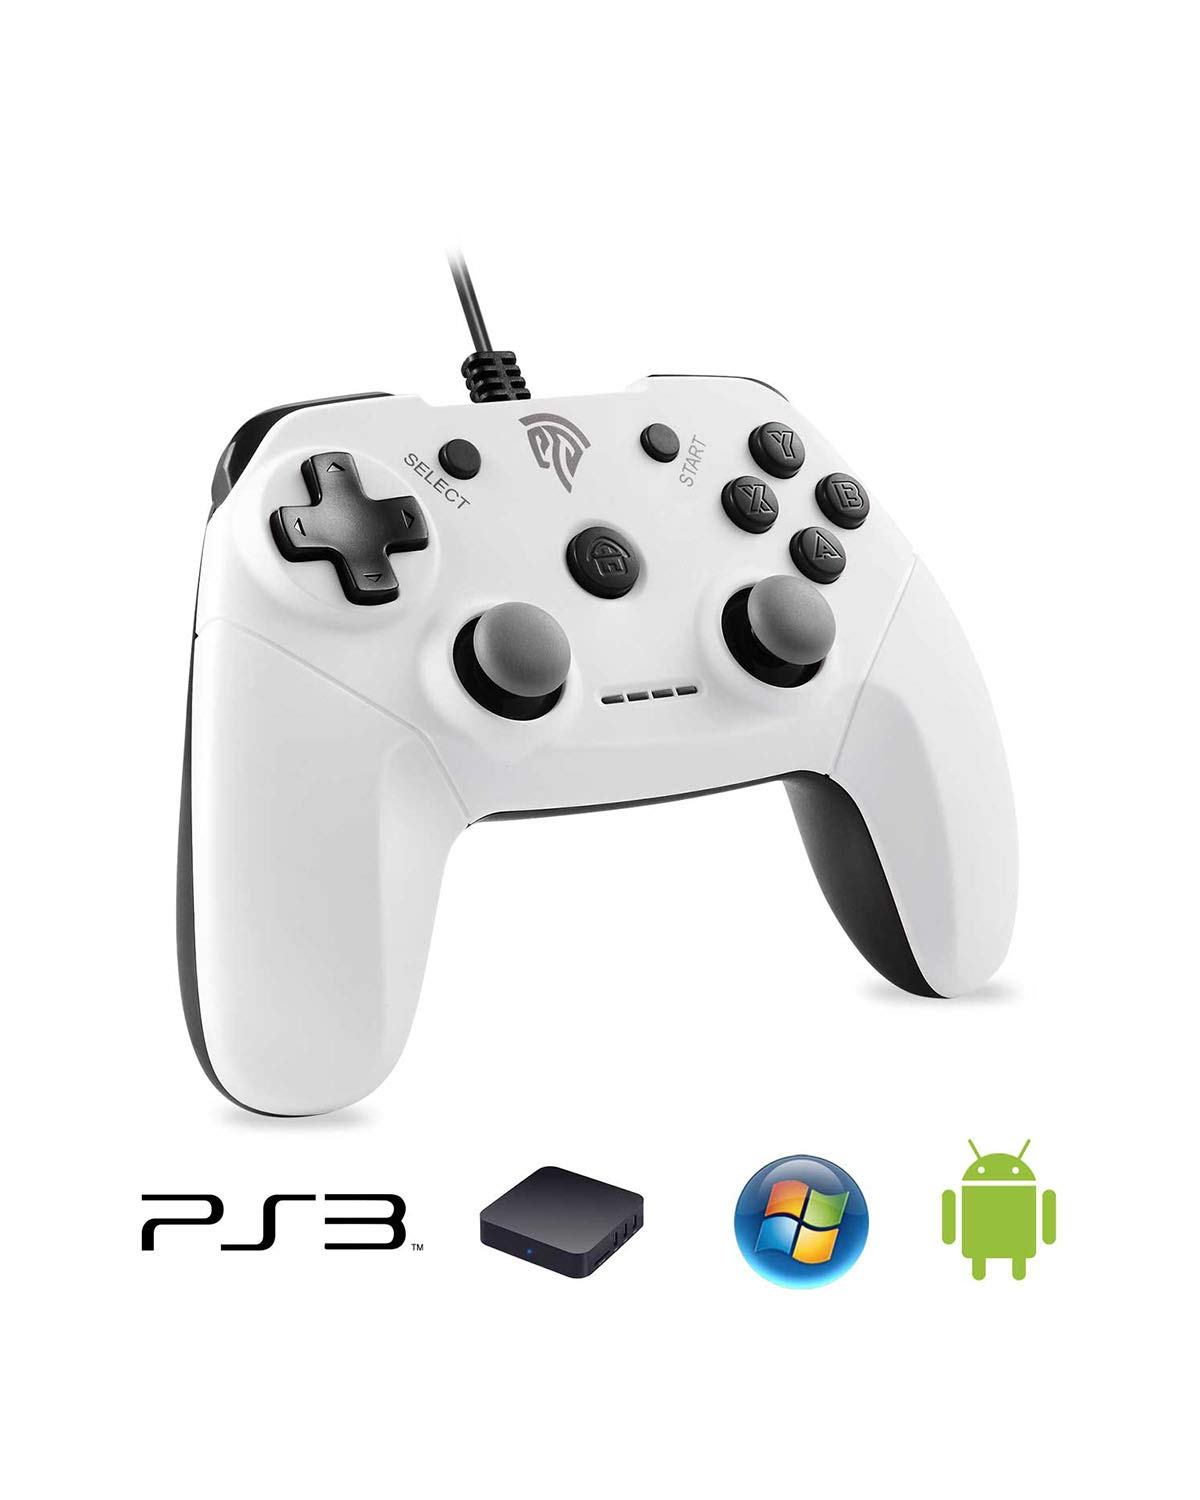 Most Design Ideas Usb Game Controller Pictures, And